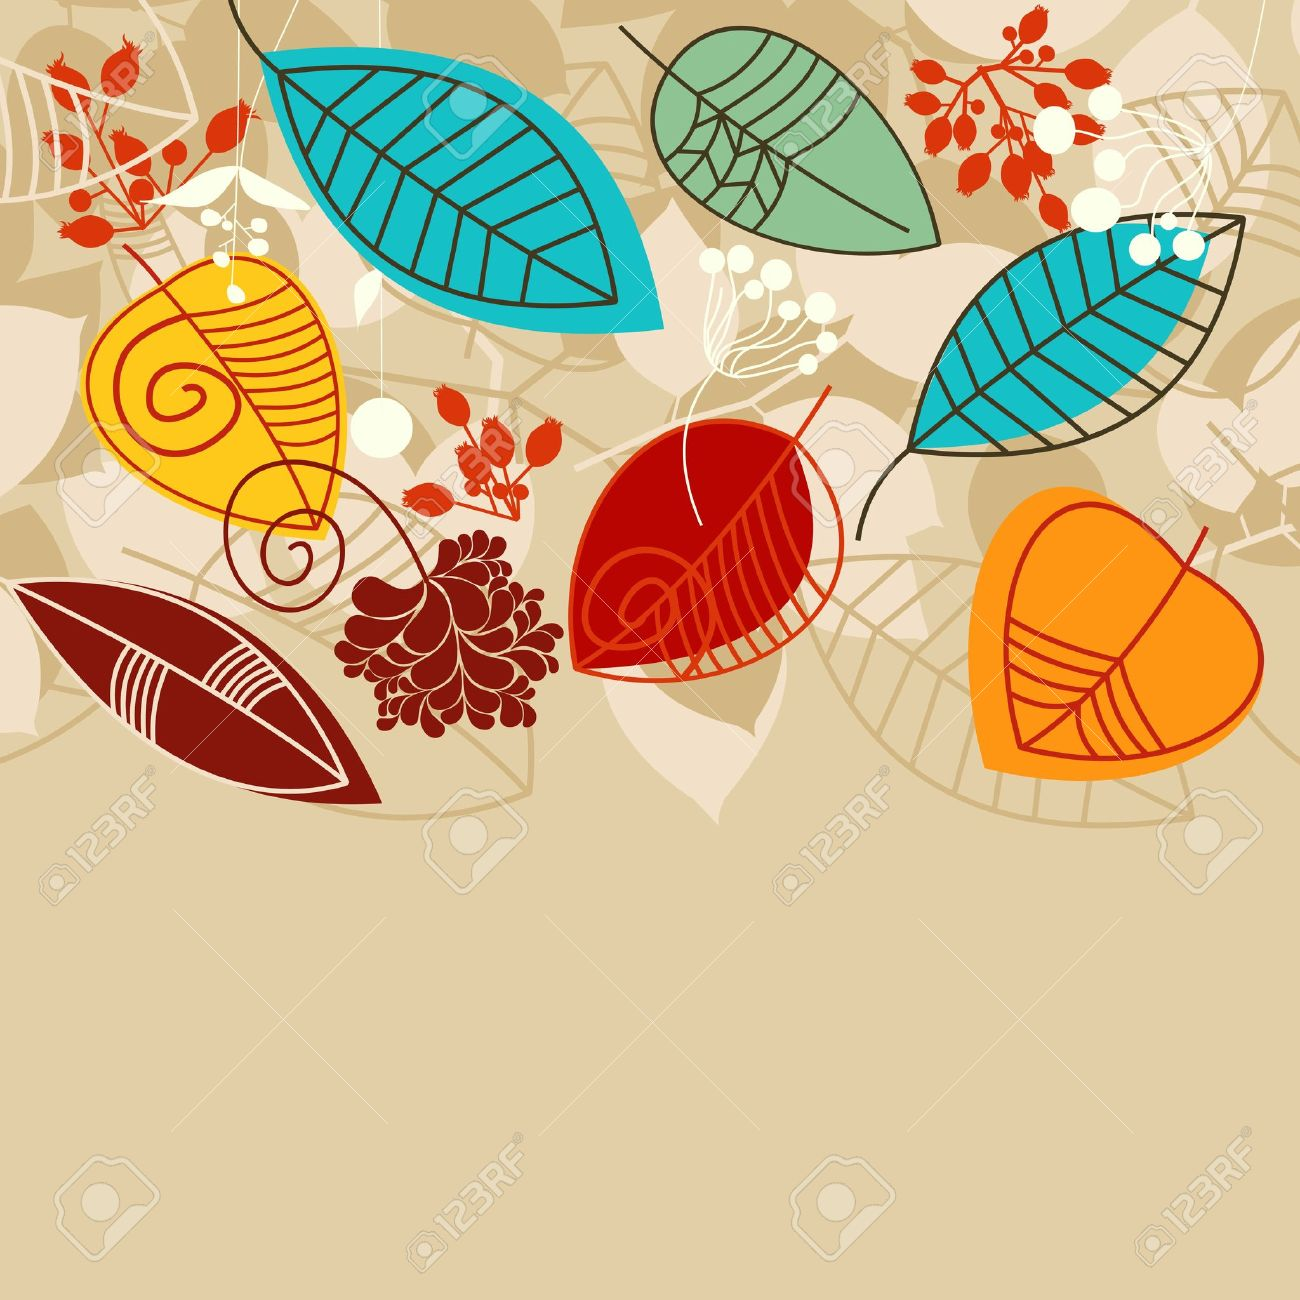 Fall Background With Leaves In Bright Colors Royalty Free Cliparts.